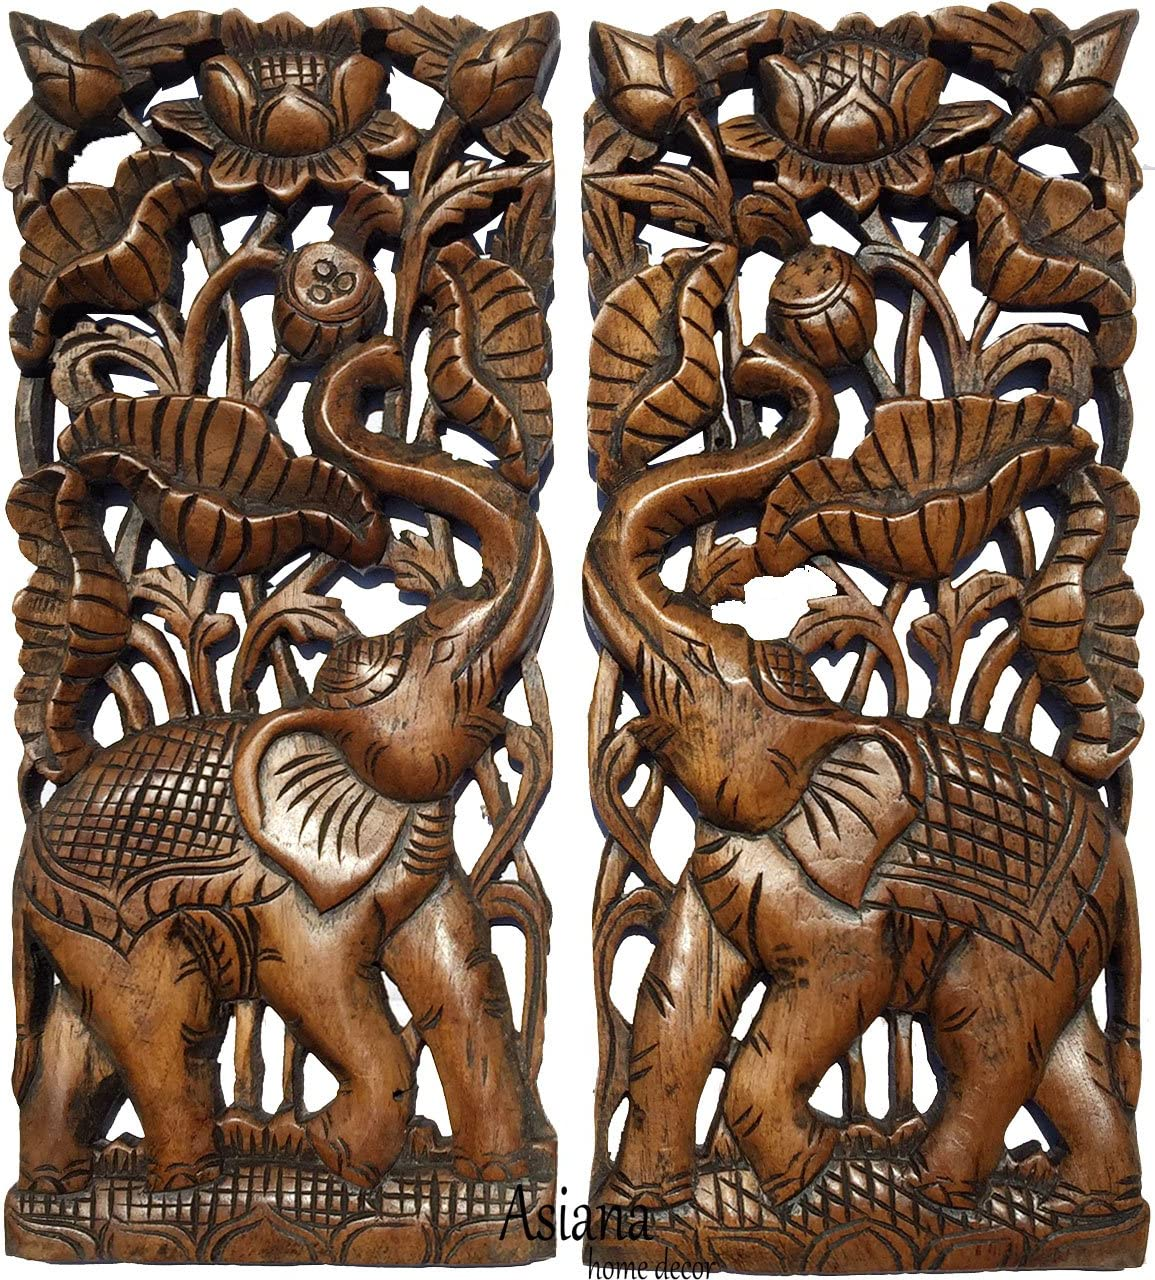 """Asiana Home Decor Carved Wood Wall Panel- Elephant with Lotus Flower Design, Size 17.5""""x7.5""""x1 Each, Set of 2 Pcs. (Brown)"""